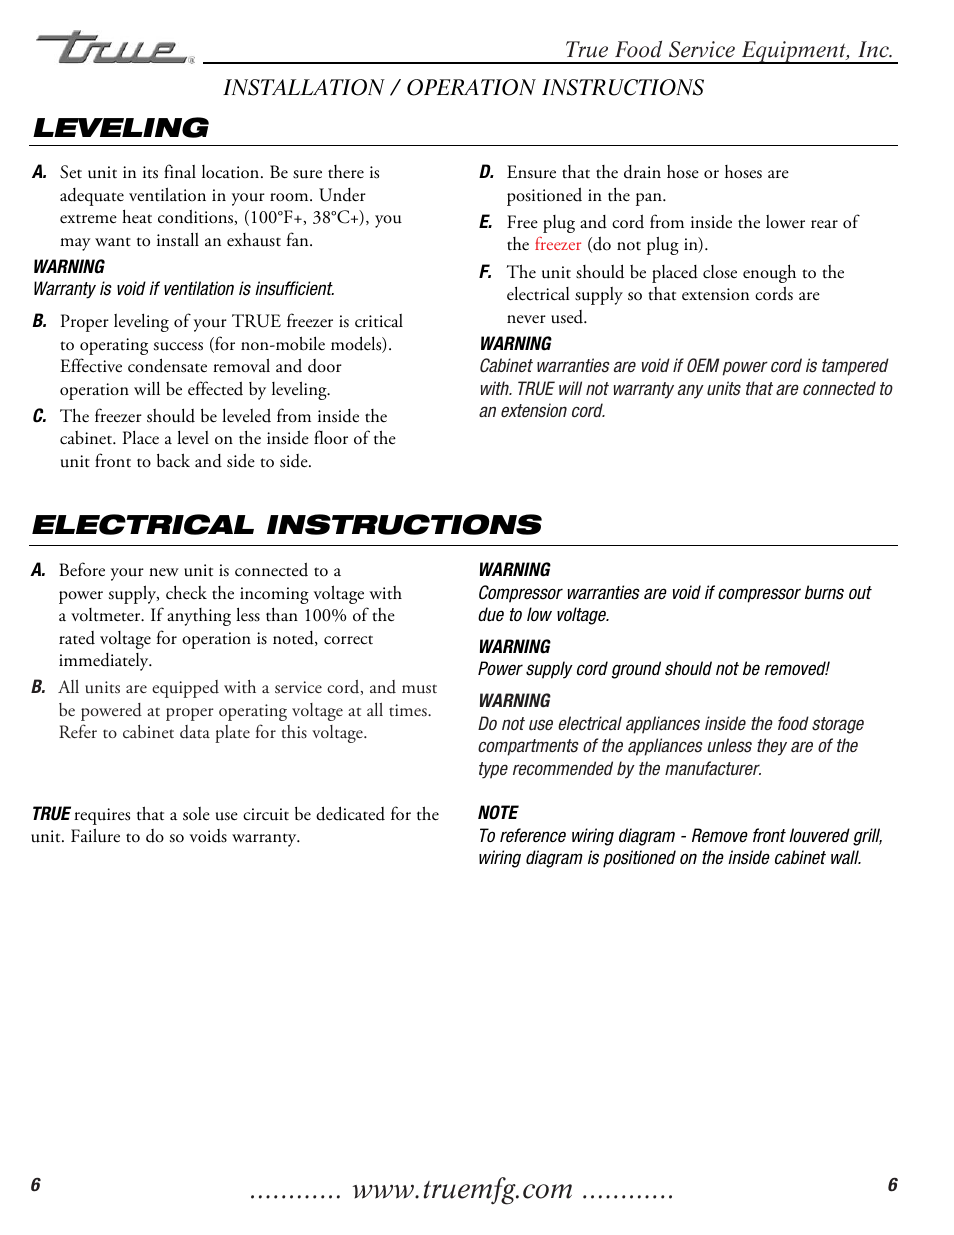 Electrical instructions, Leveling | True Manufacturing Company TWT ...